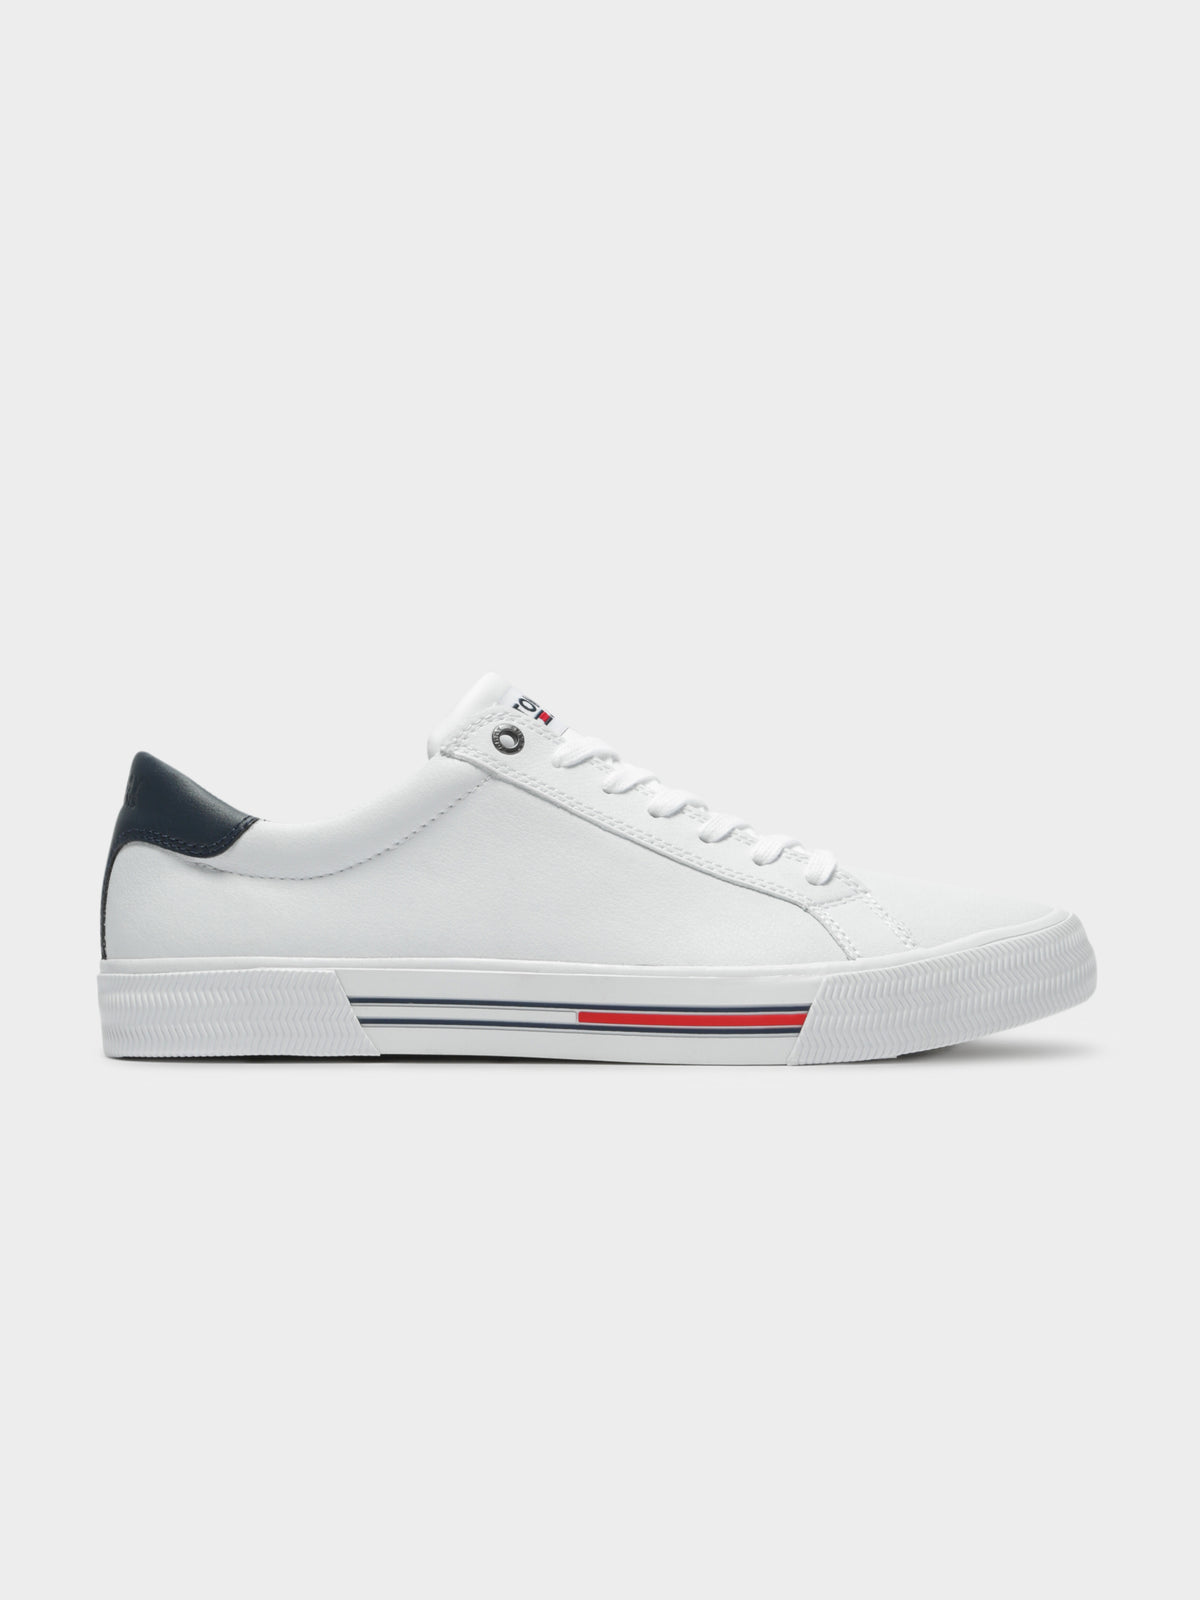 Essential Leather Sneakers in White